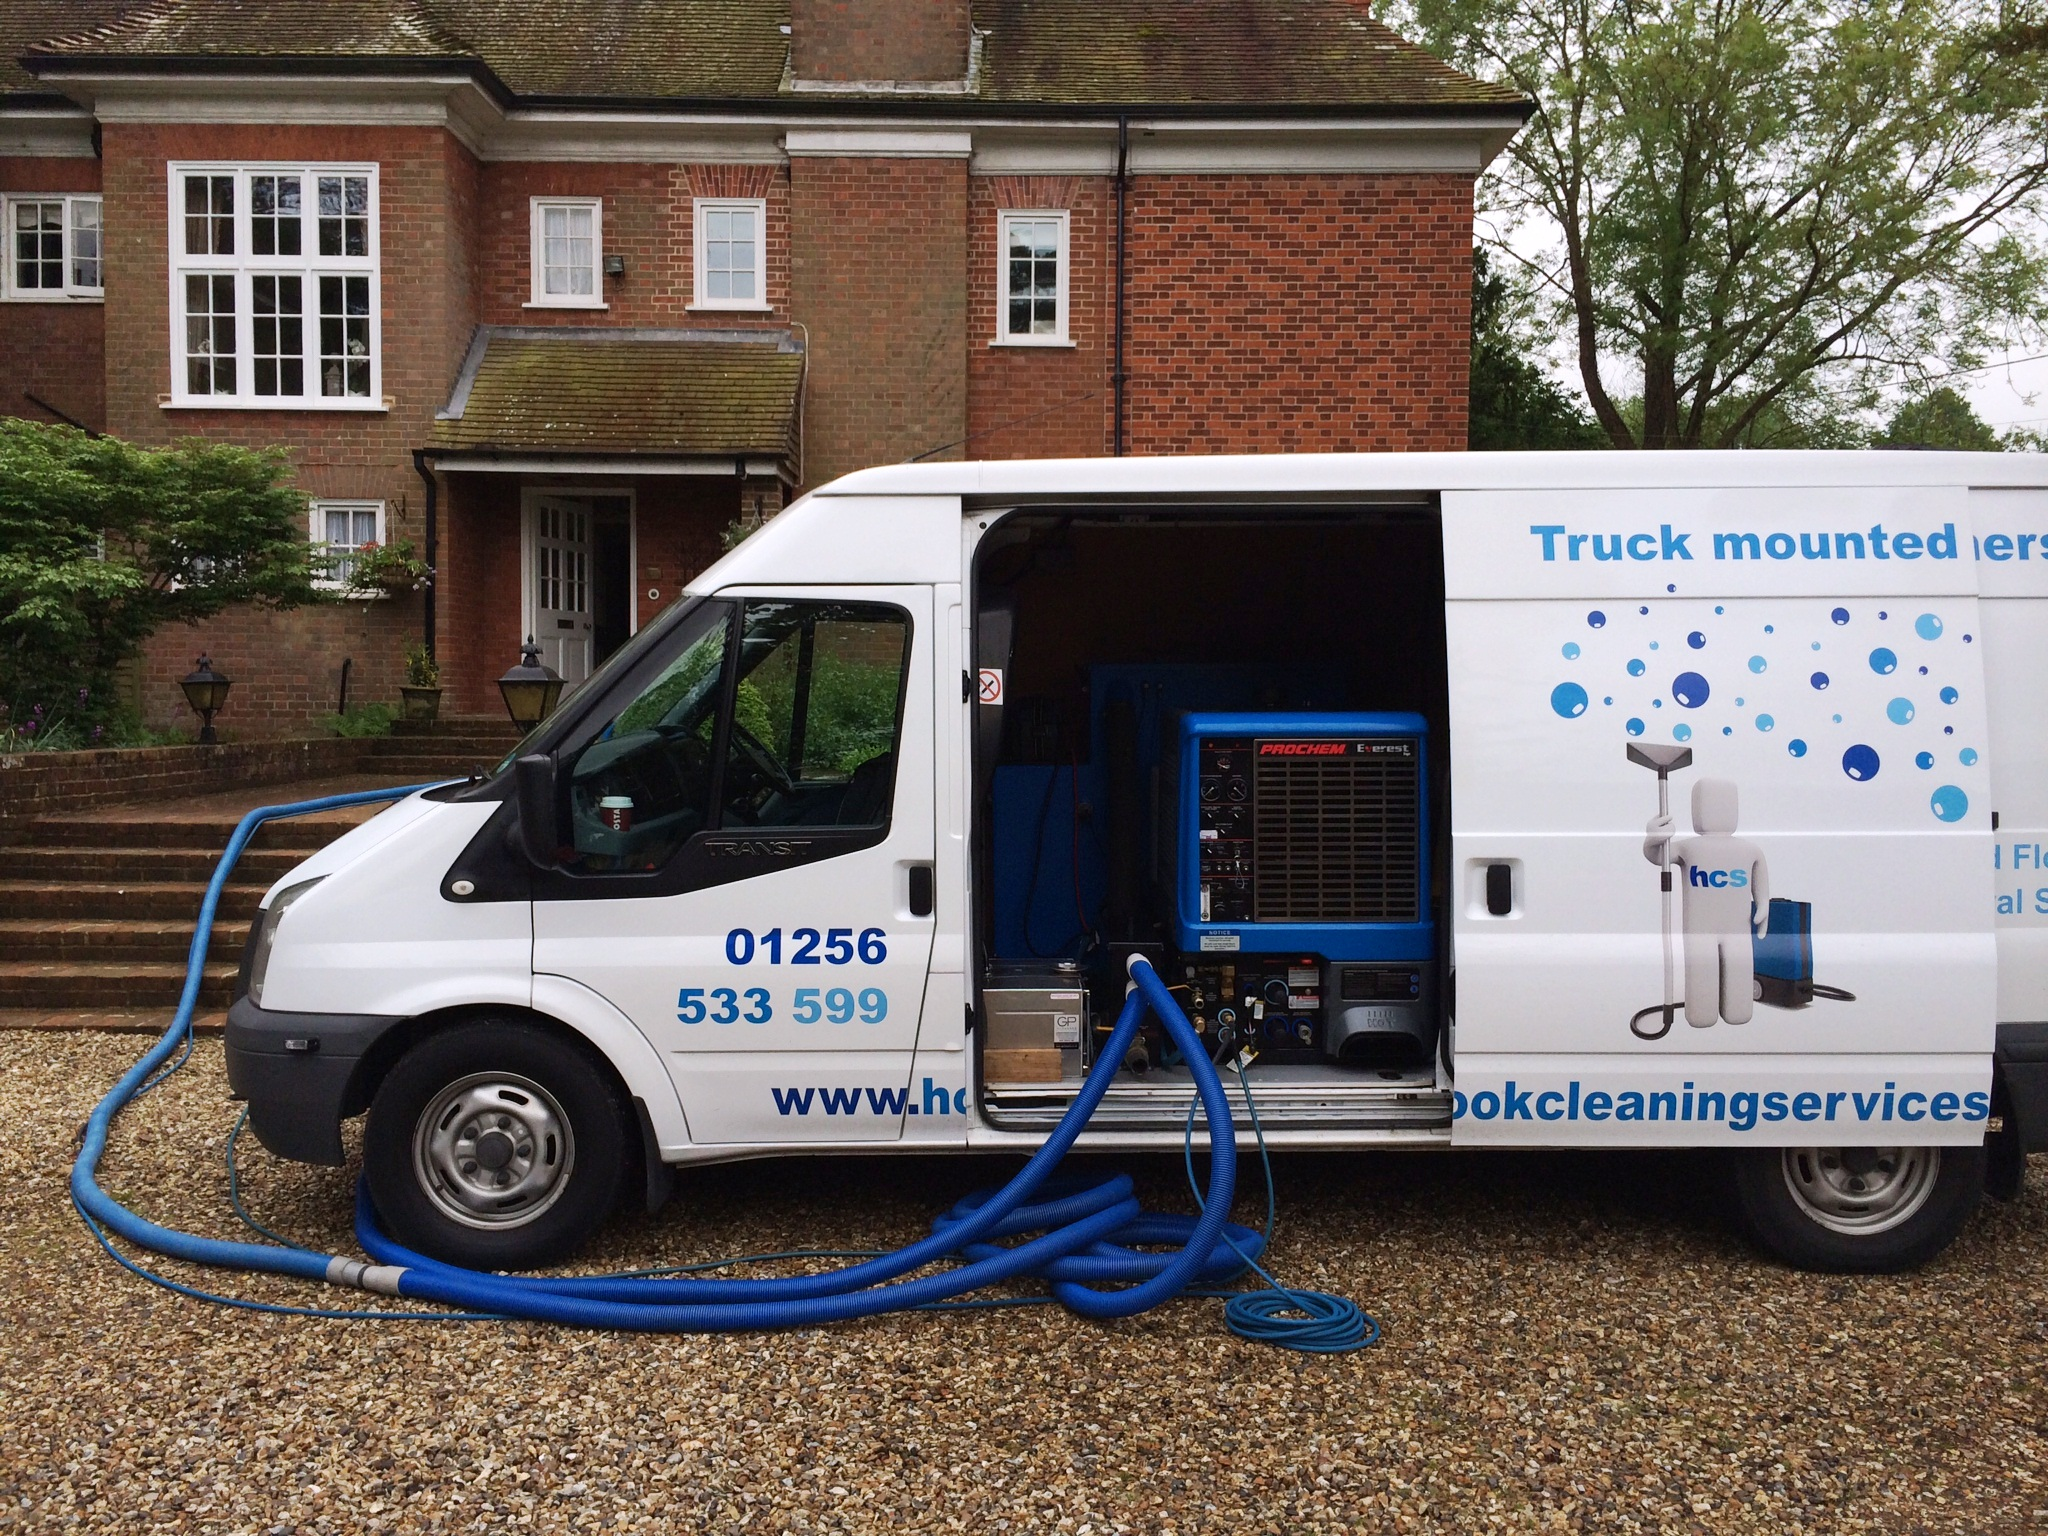 Truck Mounted Carpet Cleaning Equipment Uk Carpet Vidalondon